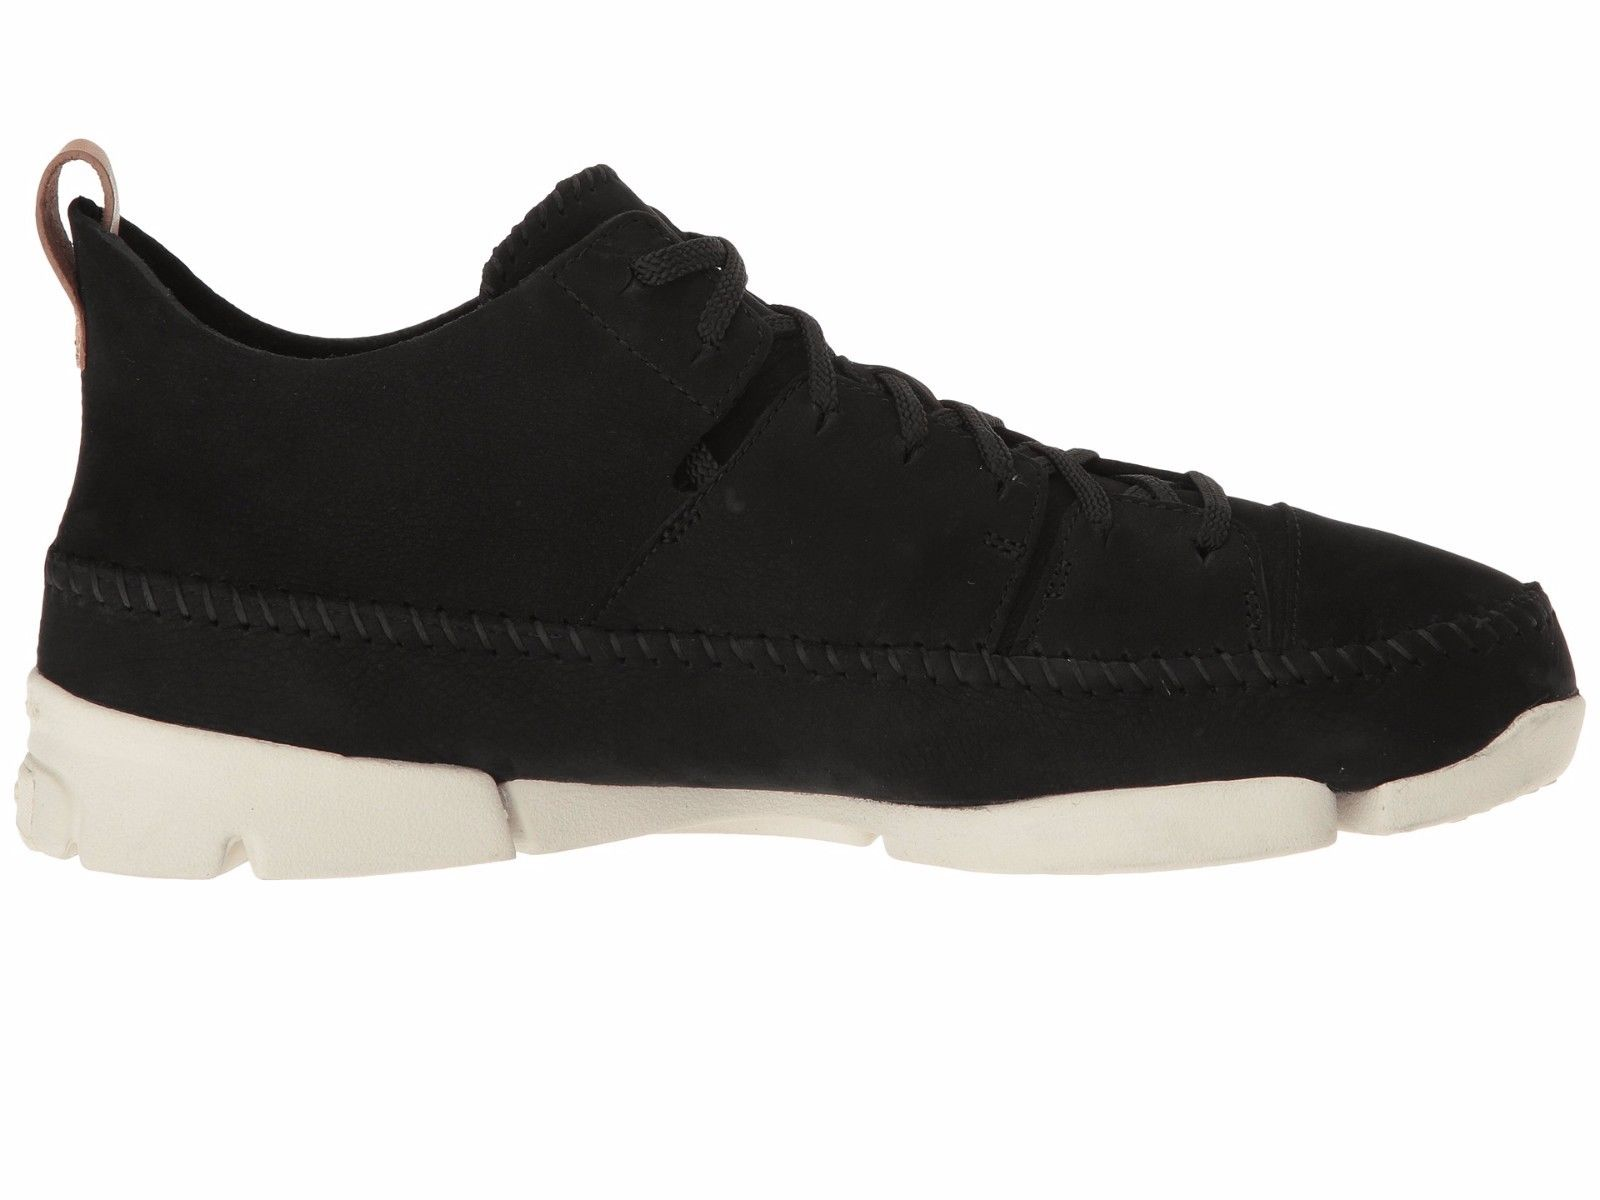 Clarks Trigenic Flex -Black Nubuck